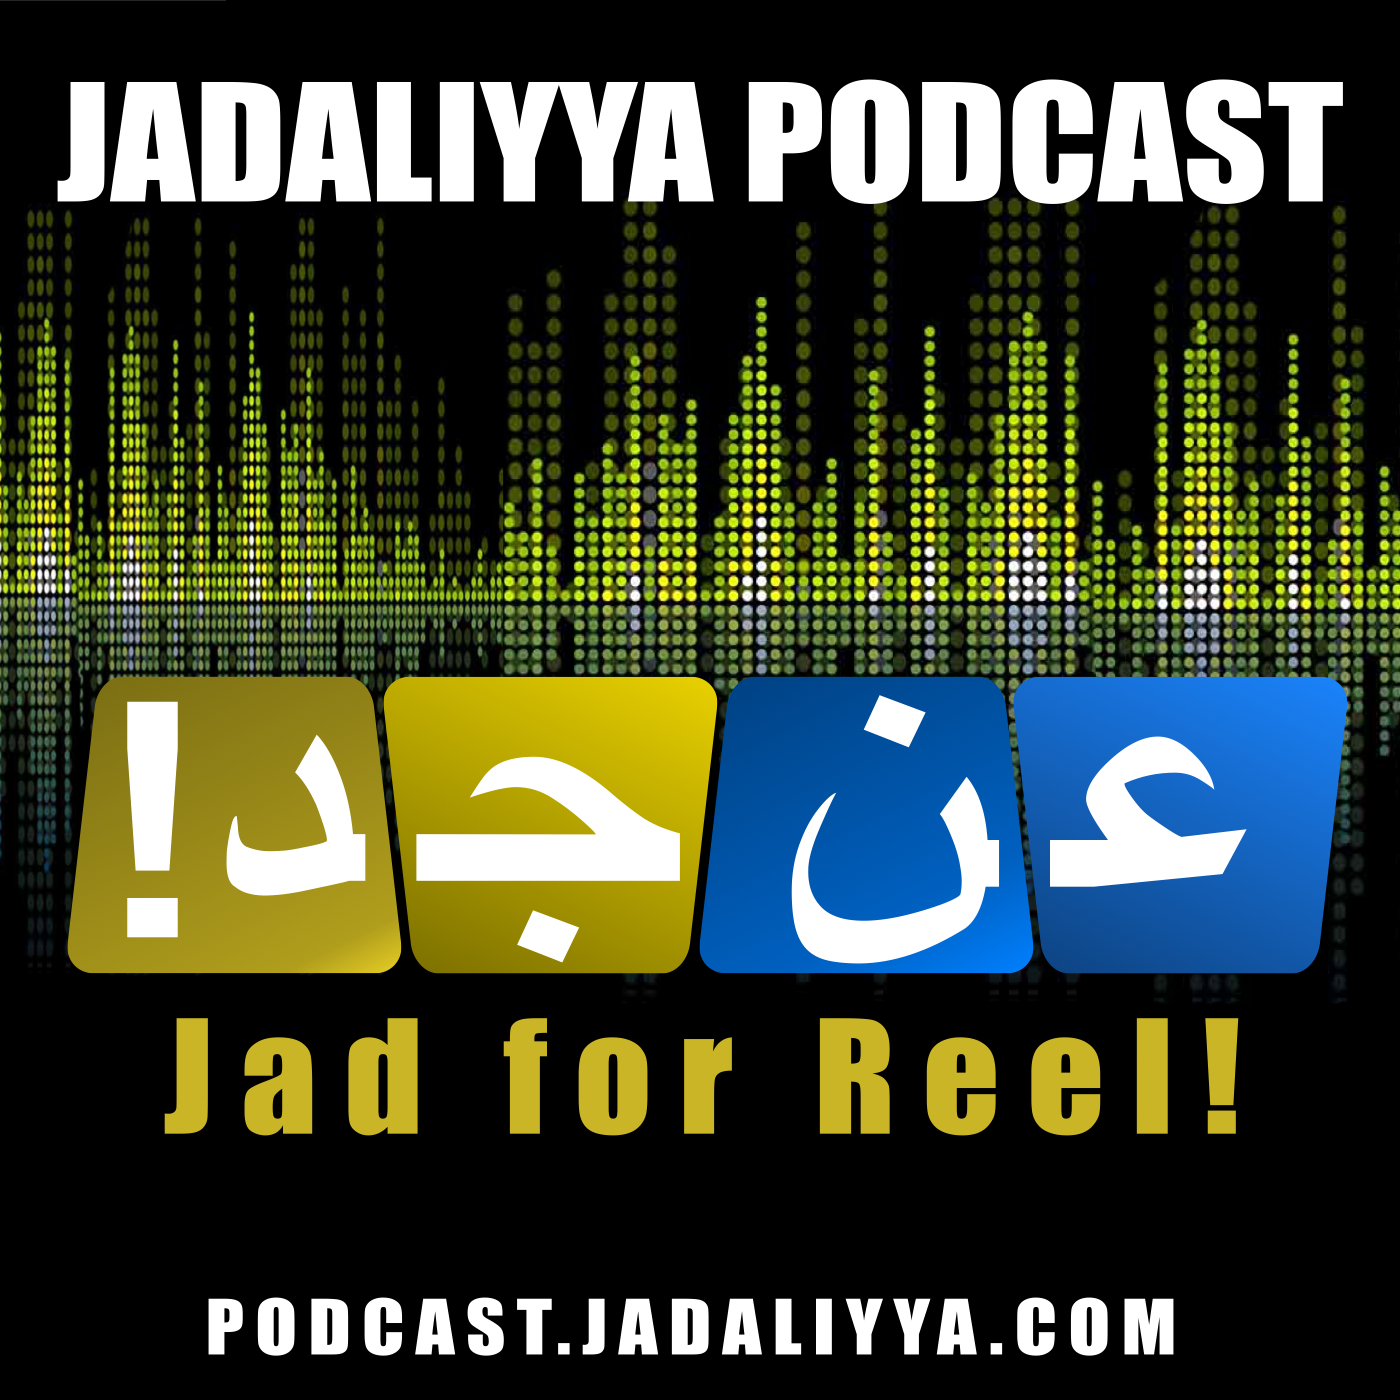 JAD For Reel عن جد